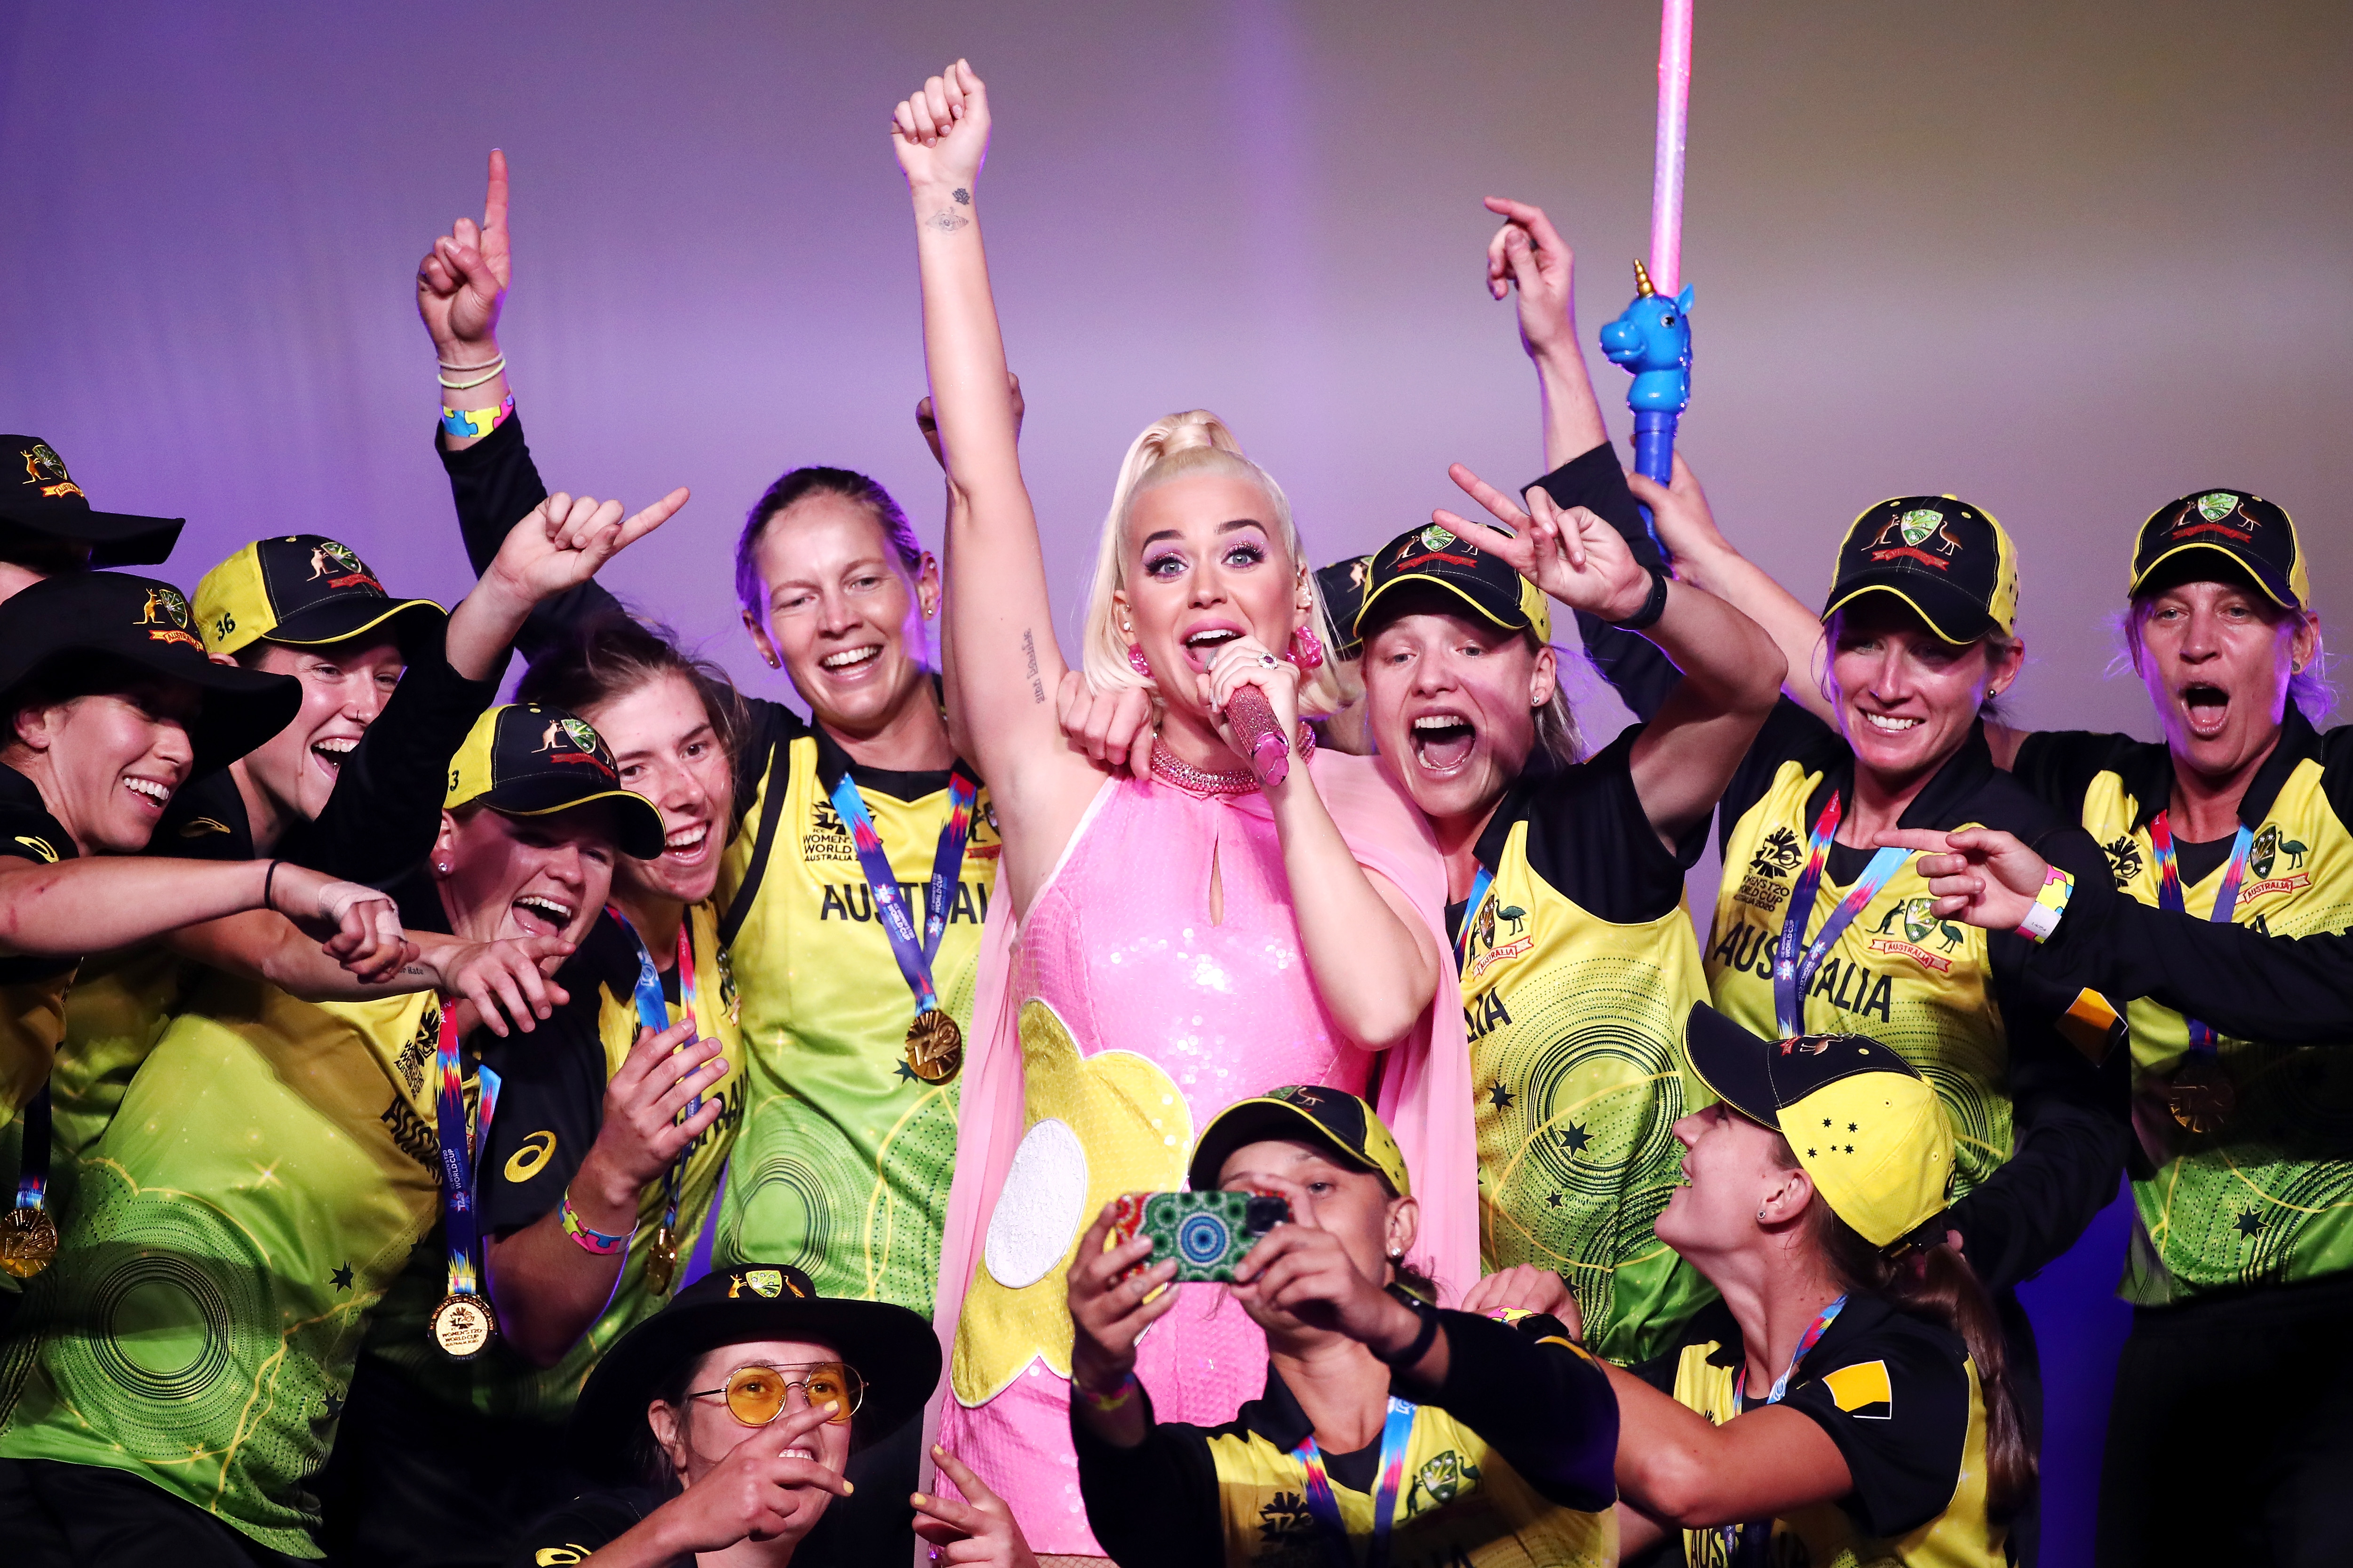 The day the Women's T20 World Cup Final rocked the MCG - International Cricket Council